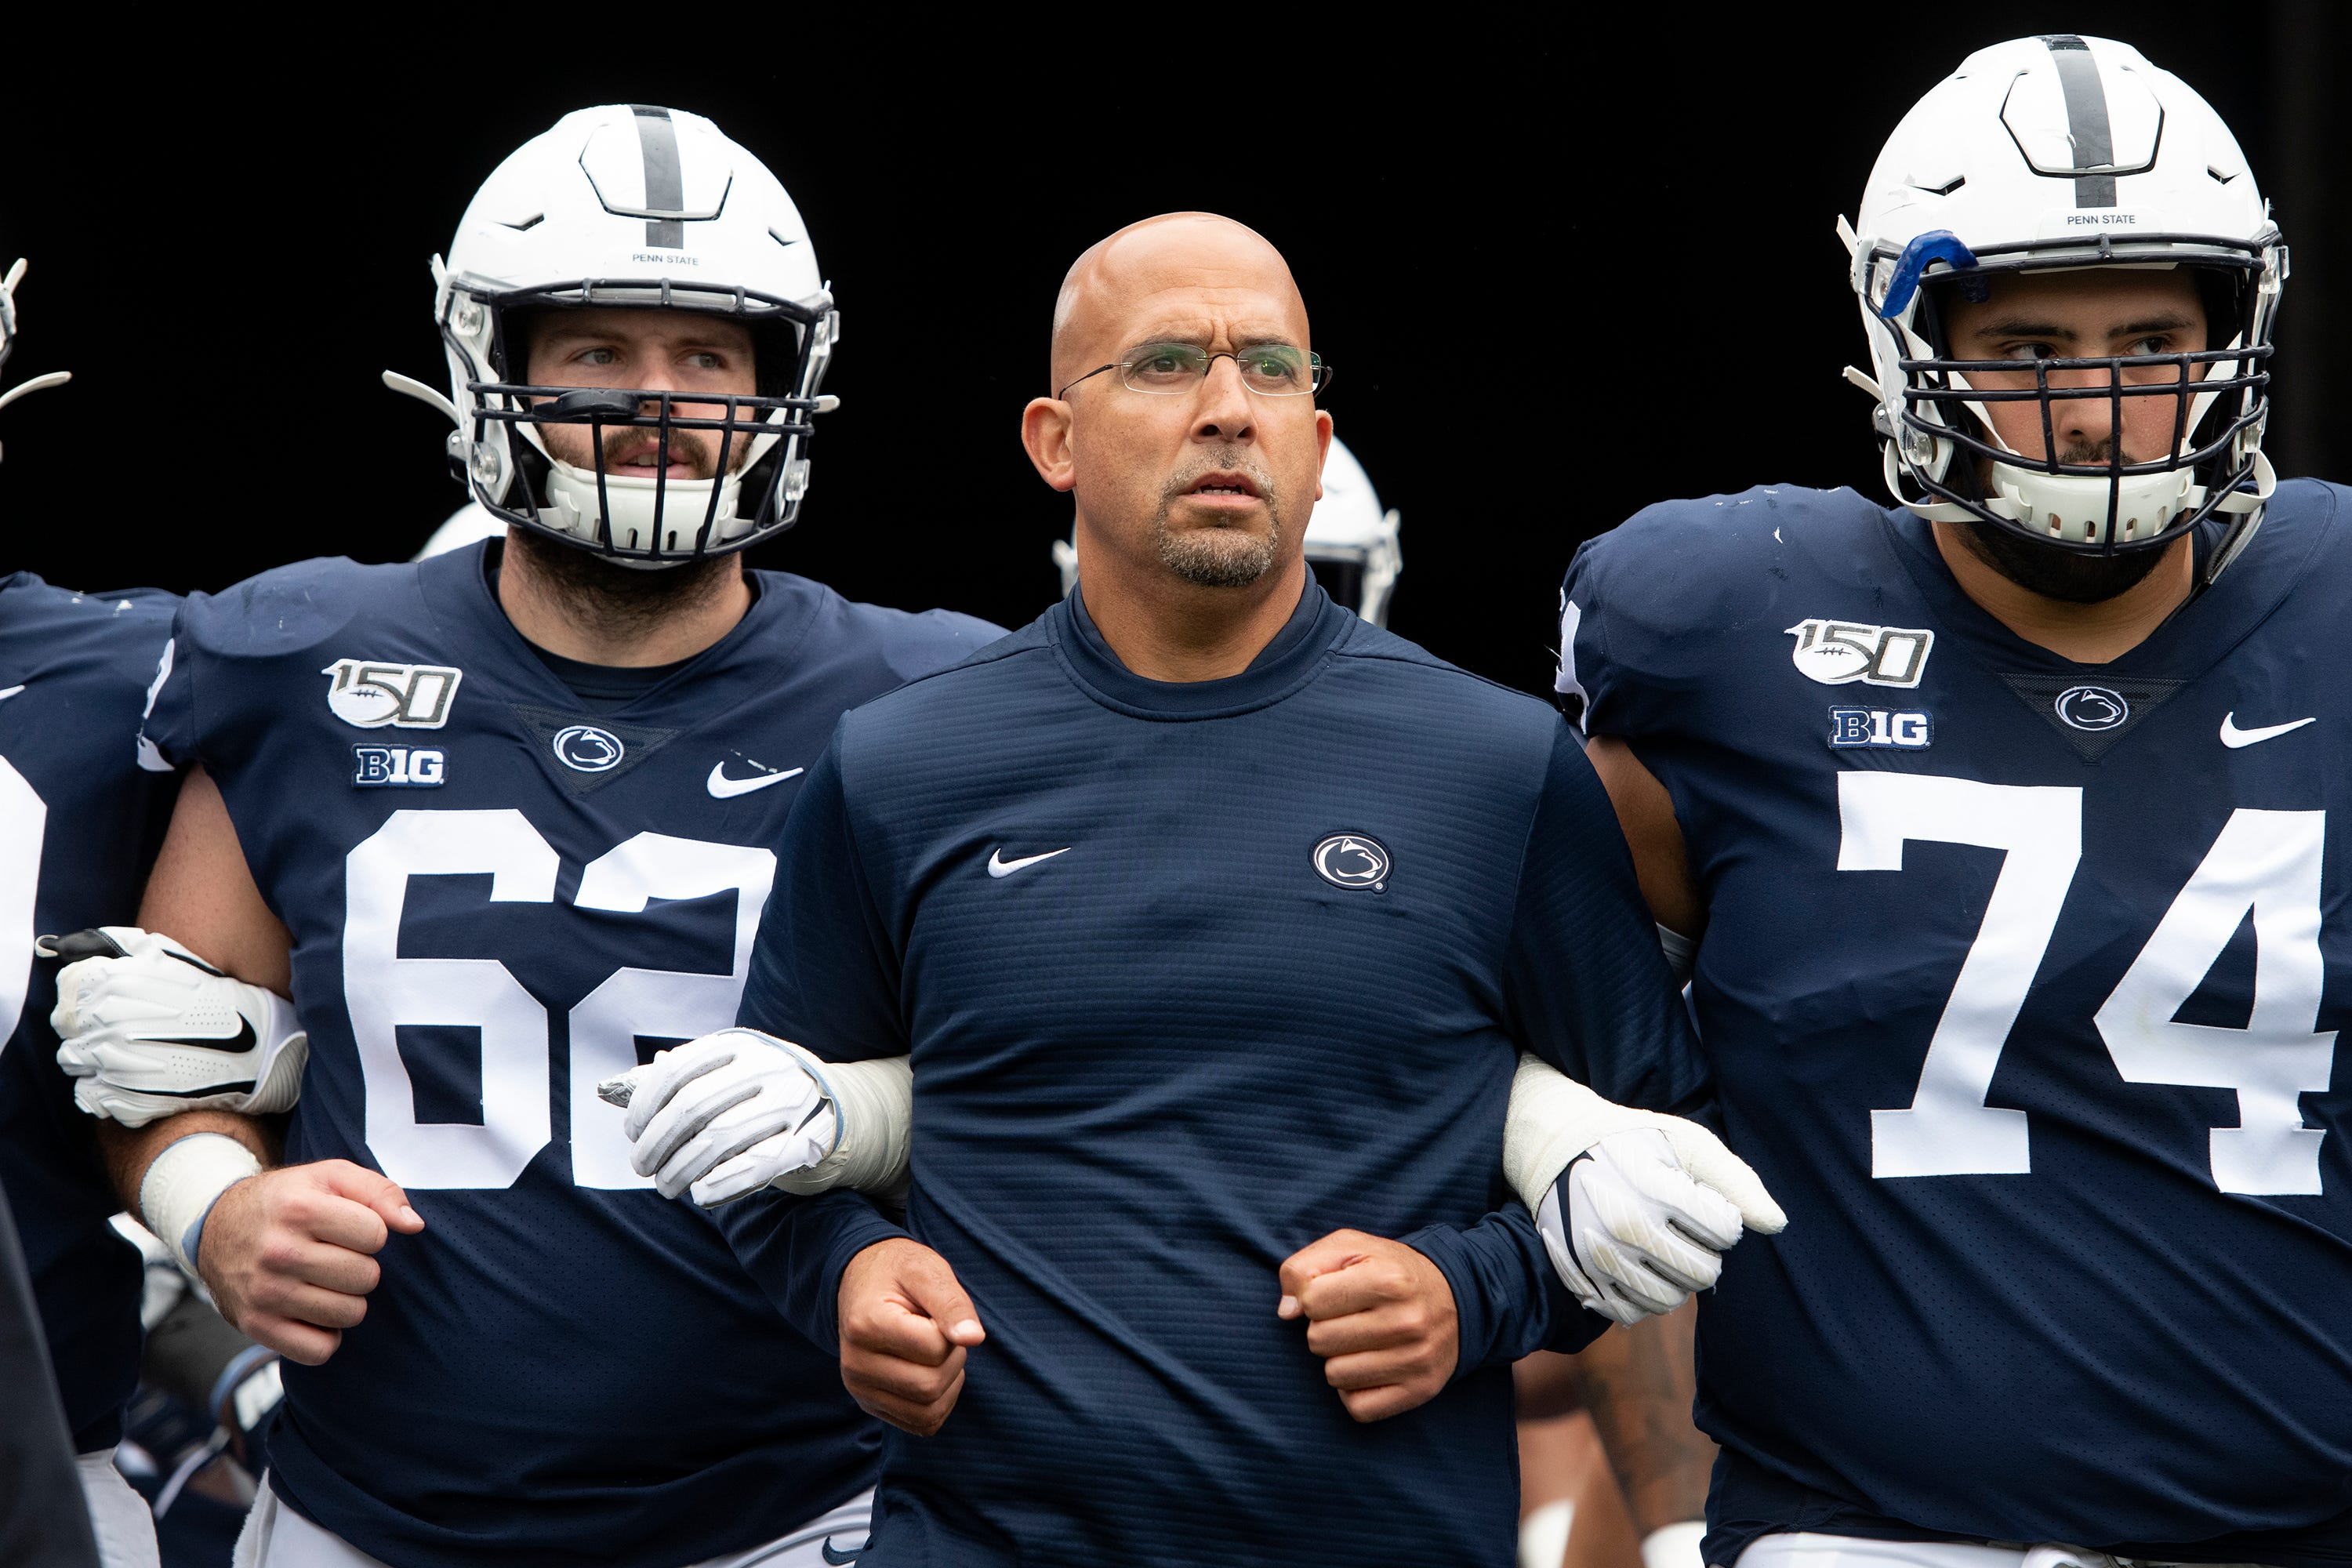 Report: Ex-Penn State football player claimed coach James Franklin told him not to tell police about fight